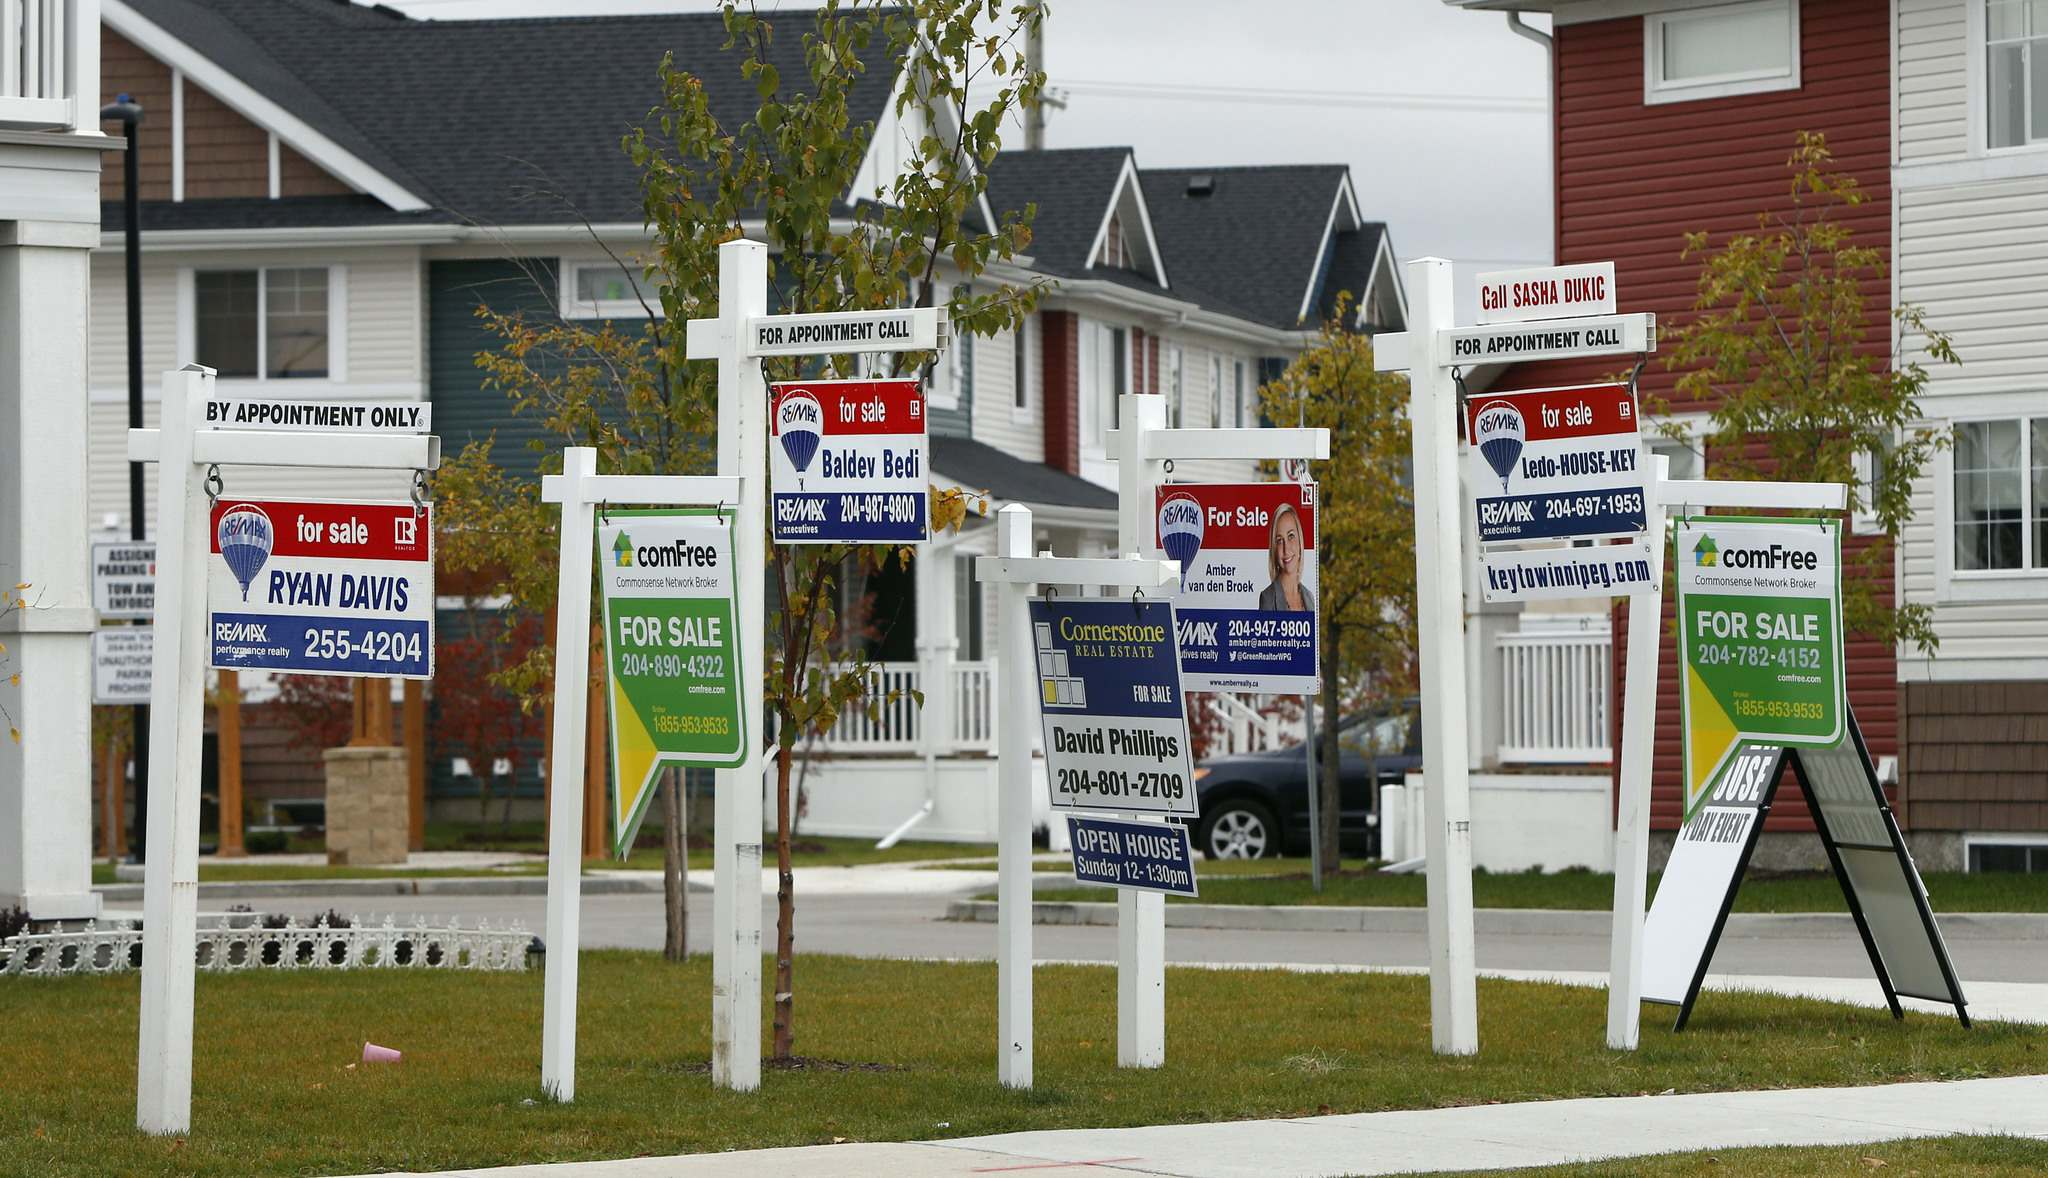 57% of Canadian millennials believe they can afford a home